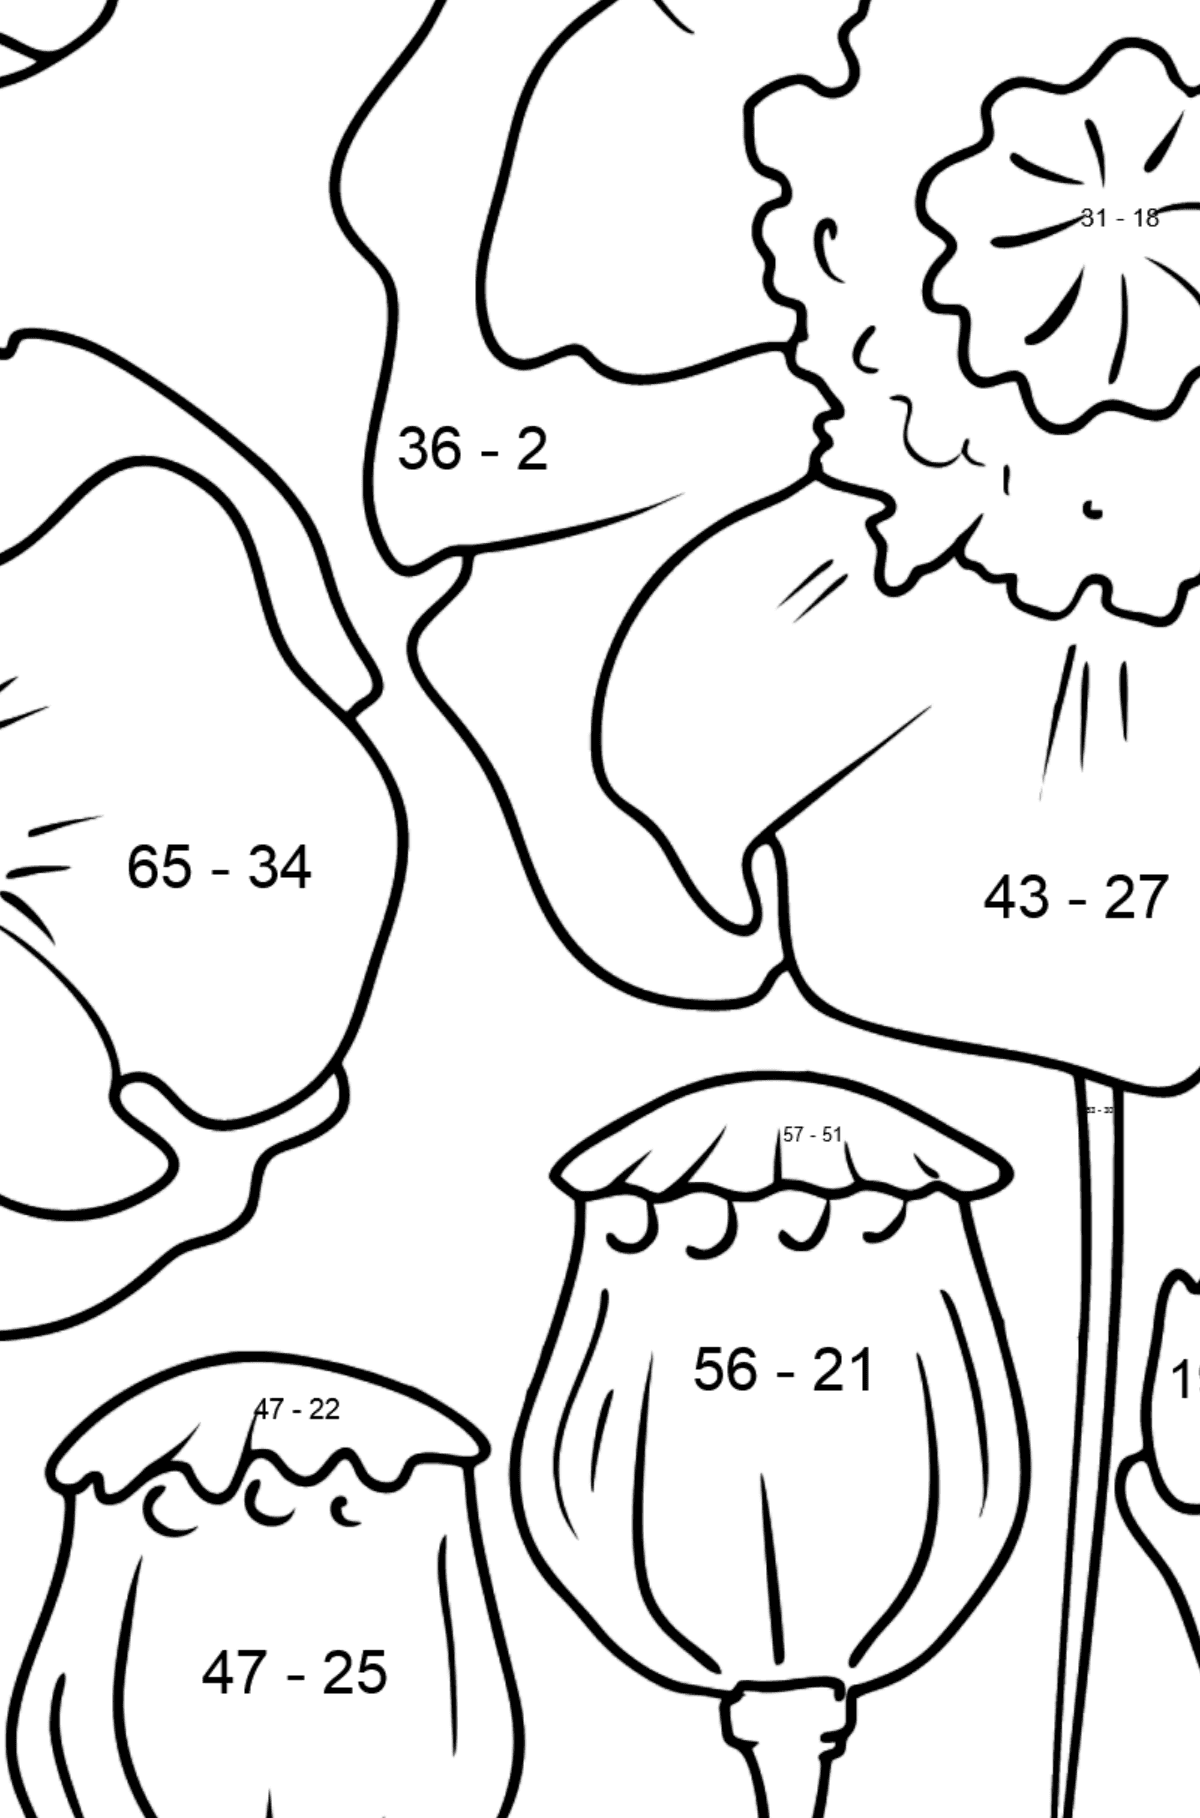 Flower Coloring Page - Poppies - Math Coloring - Subtraction for Kids